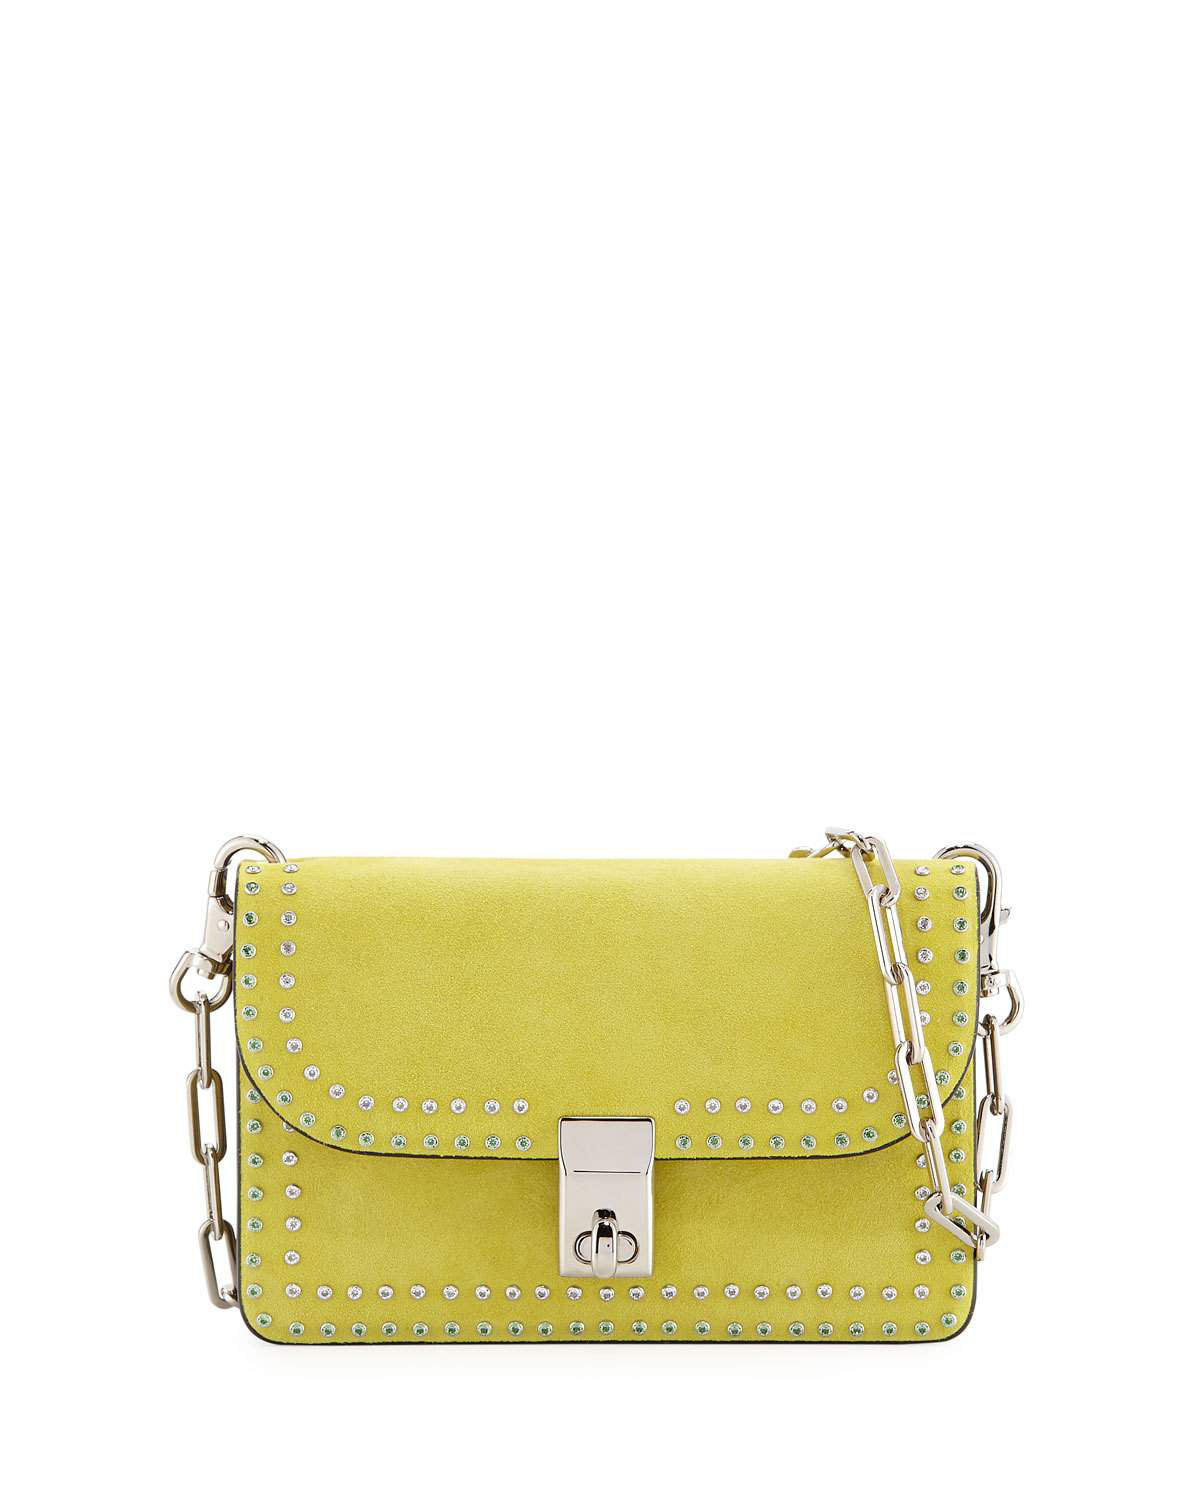 85f72de631f Valentino Studded Suede Shoulder Bag In Acid Yellow | ModeSens